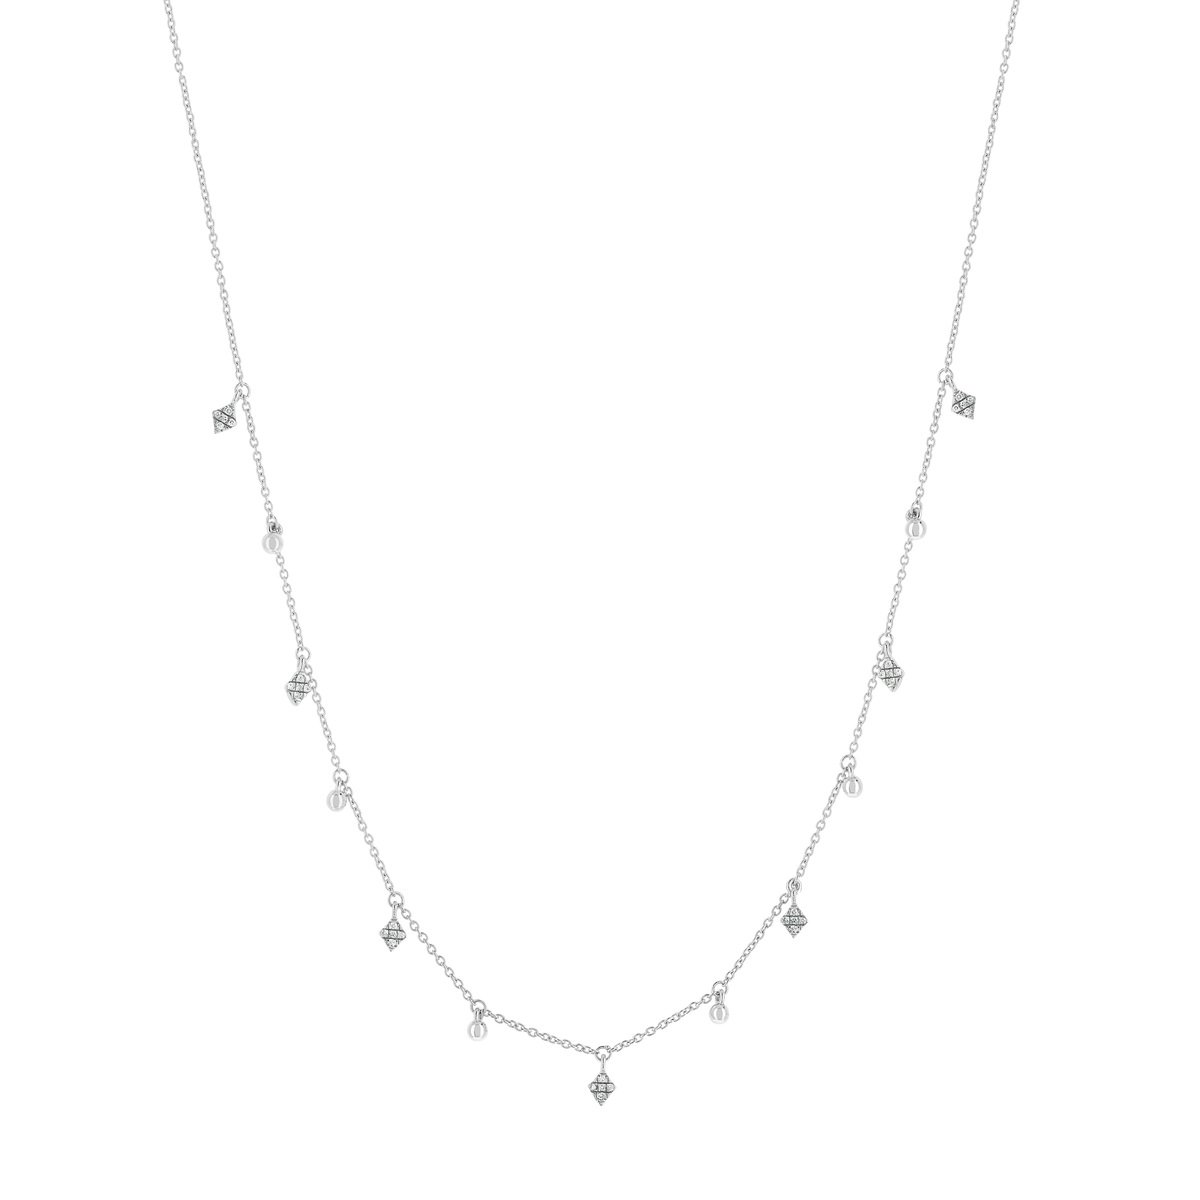 Collier or blanc 375 diamants 45 cm - vue V1